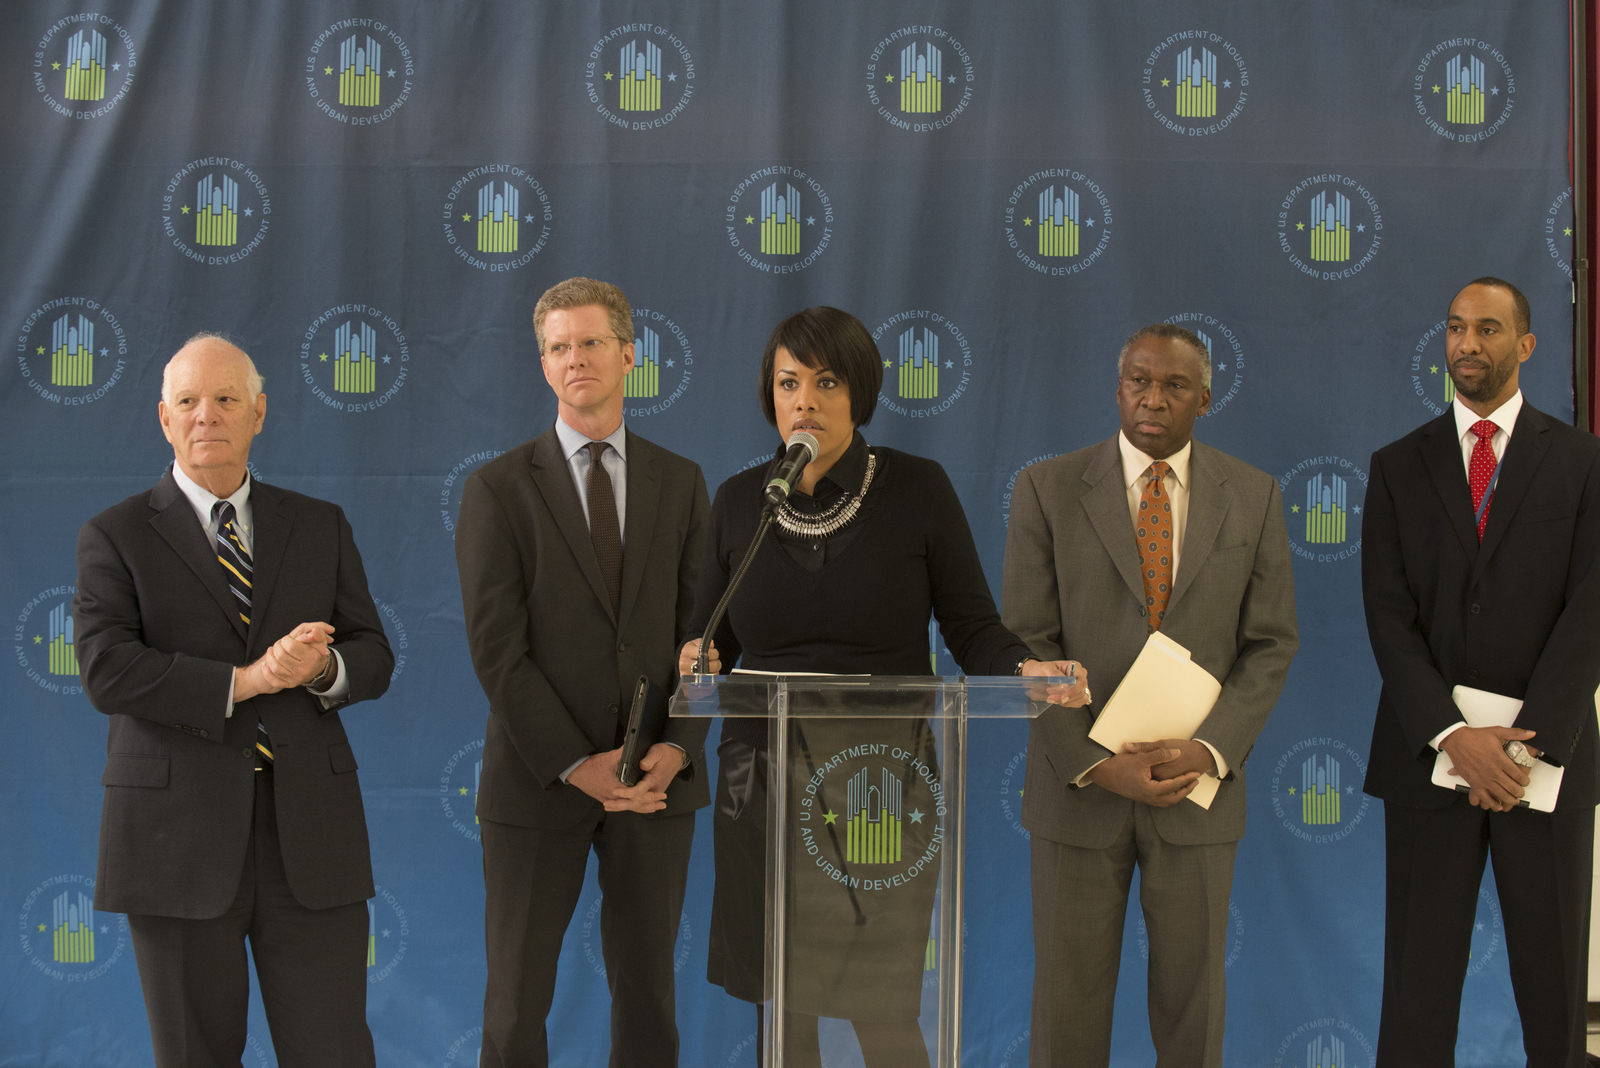 Secretary Shaun Donovan in Baltimore, Maryland [for tour of] Cherry Hill [Homes and press conference highlighting energy efficient updates implemented as part of the Obama Administration's Better Buildings Challenge. Joining Secretary Donovan were Baltimore Mayor Stephanie Rawlings-Blake, Maryland Senator Ben Cardin, Maryland Secretary of Housing and Community Development Raymond Skinner, and Housing Authority of Baltimore City Deputy Executive Director Anthony Scott, among others.]